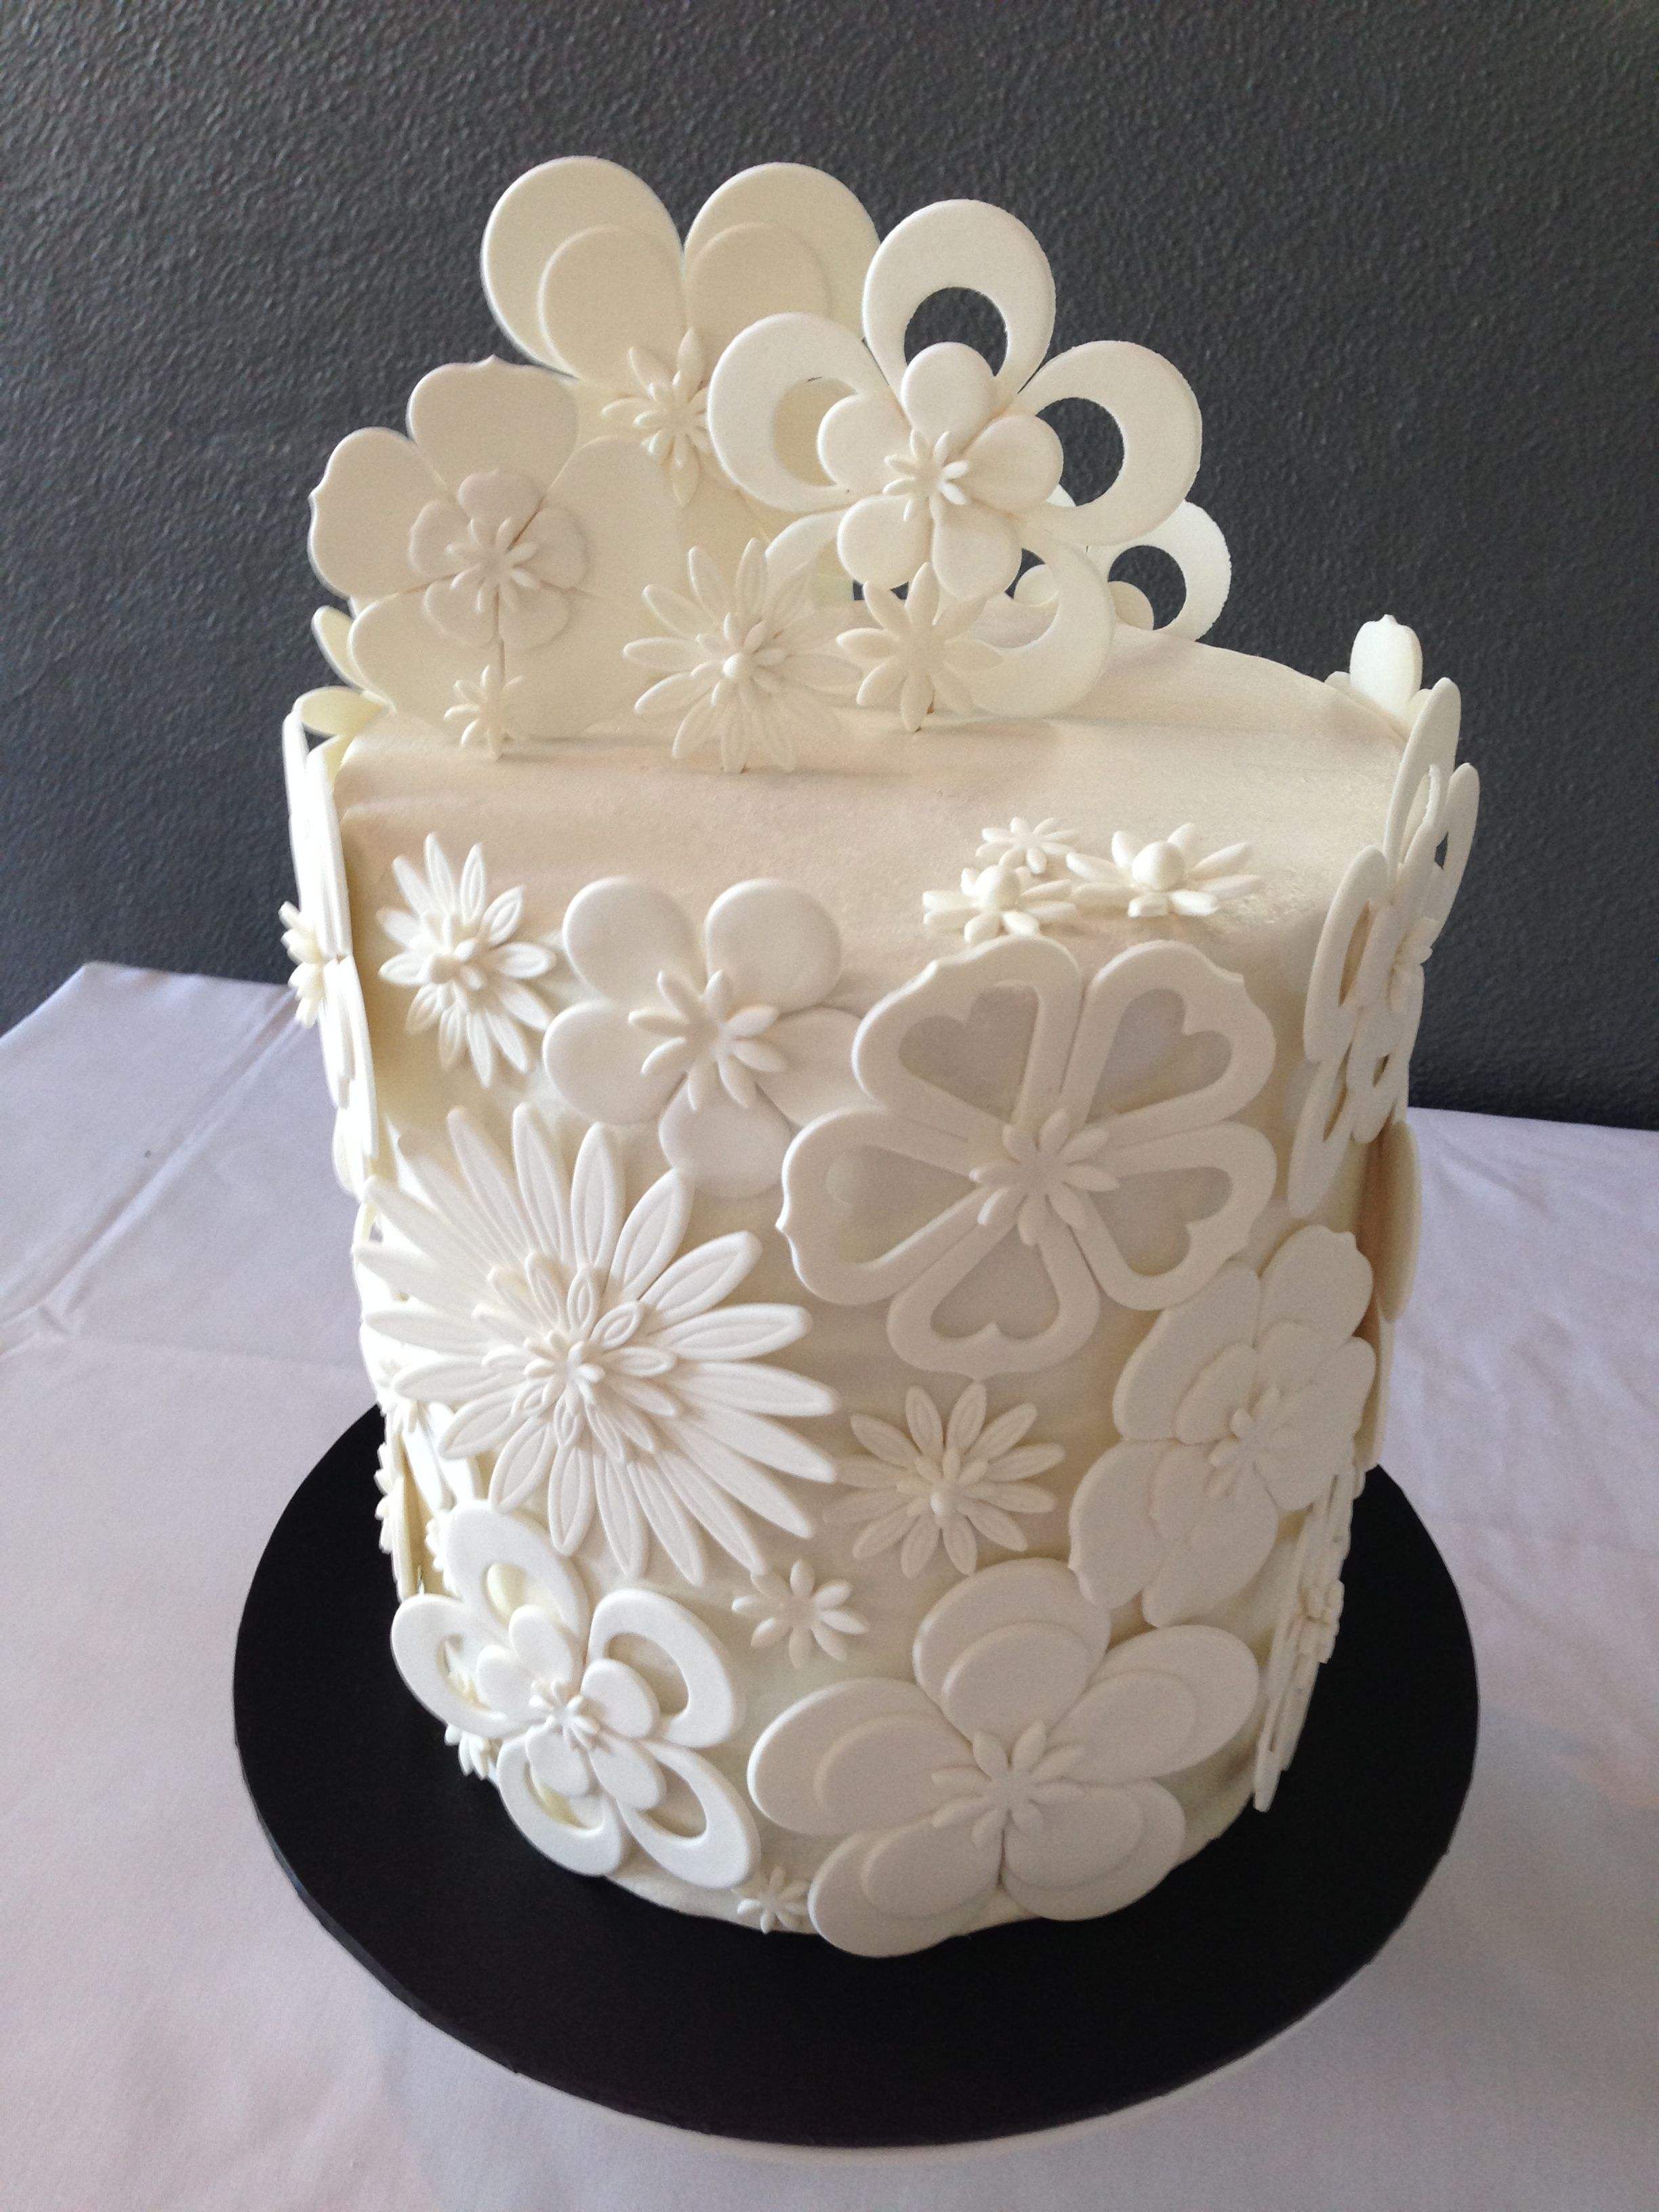 White Cut Out Flower Wedding Cake A Double Barrel Chocolate Mud with ...